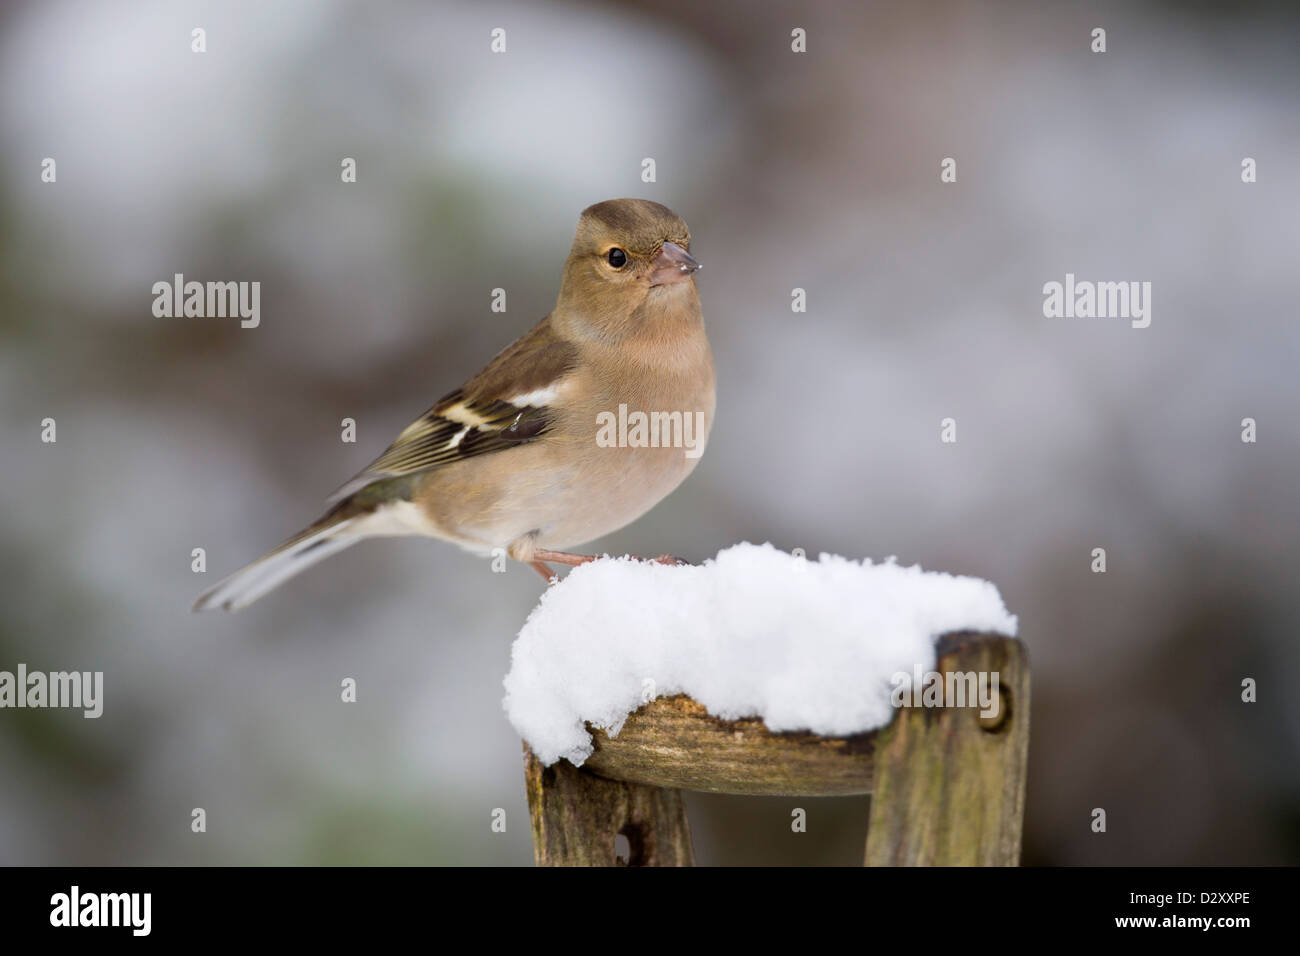 Chaffinch; Fringilla coelebs; Female; Winter; UK - Stock Image